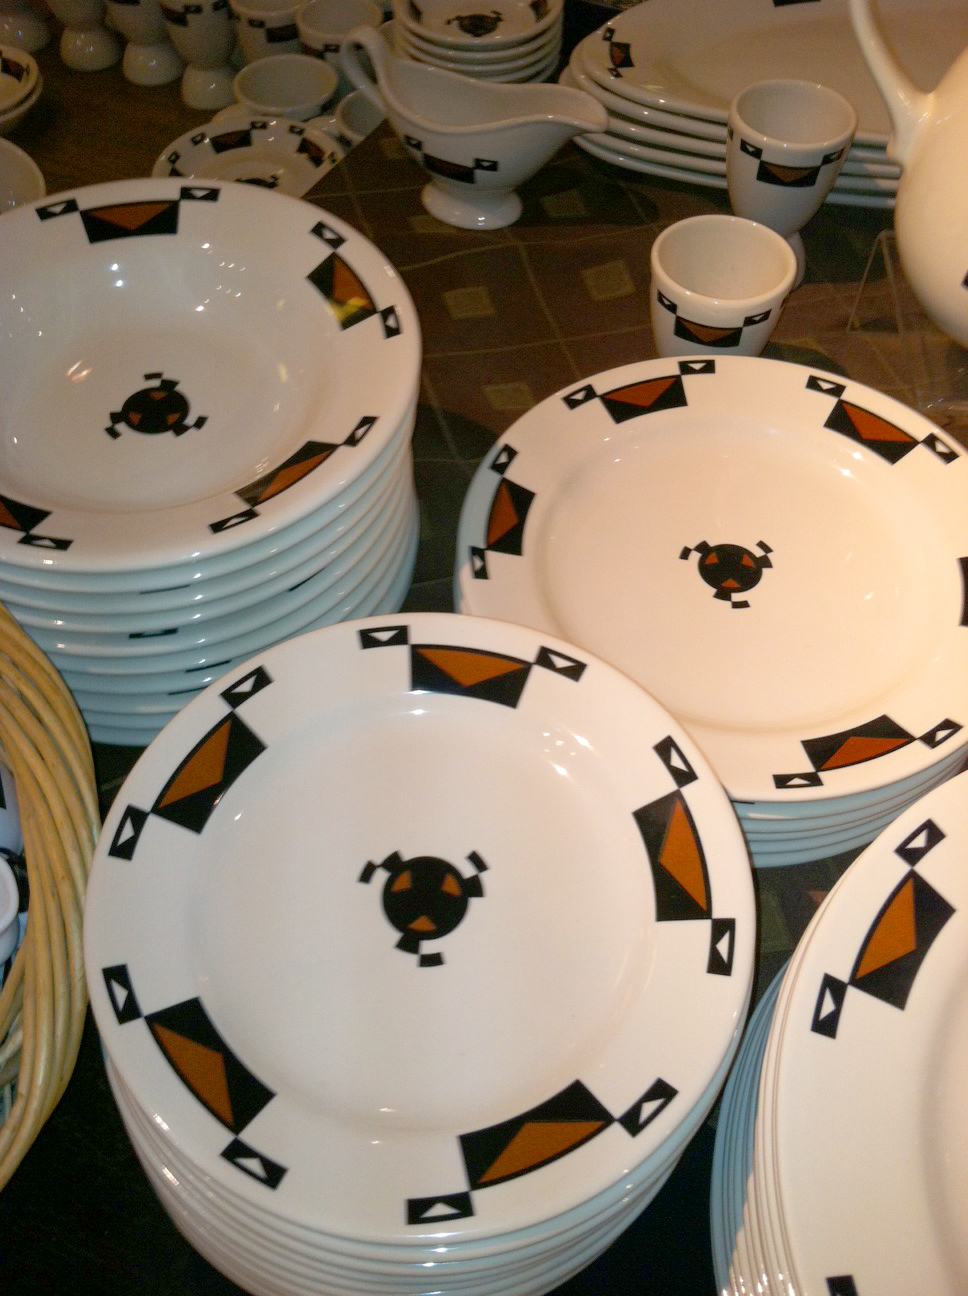 The Ahwahnee China: Dining with History | Yosemite Park Blog